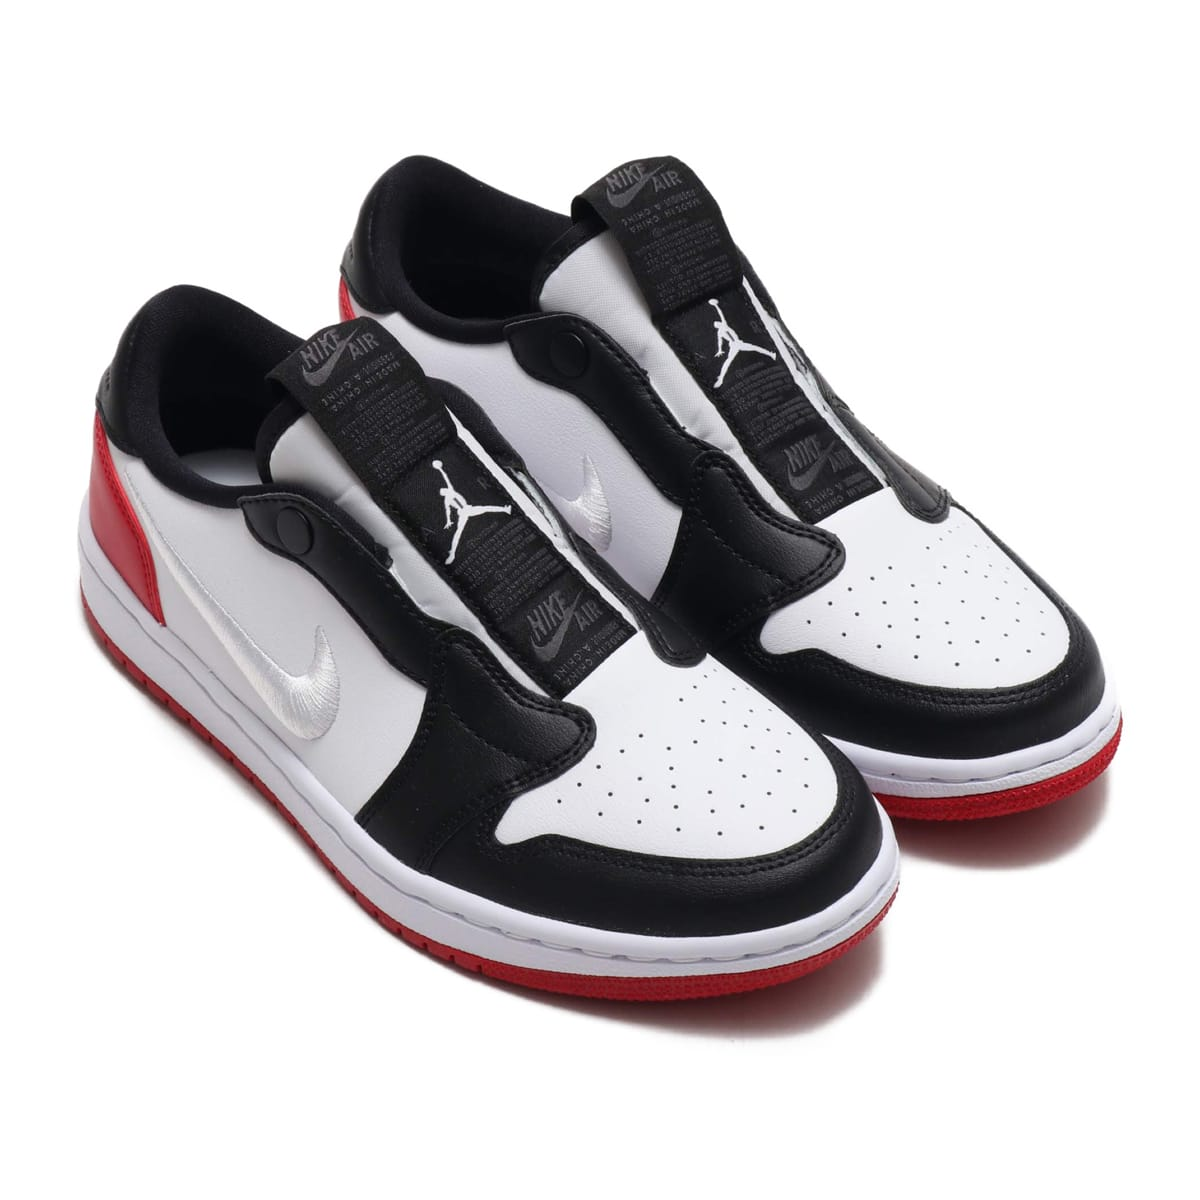 NIKE WMNS AIR JORDAN 1 RET LOW SLIP WHITE/WHITE-GYM RED-BLACK 19FA-S_photo_large